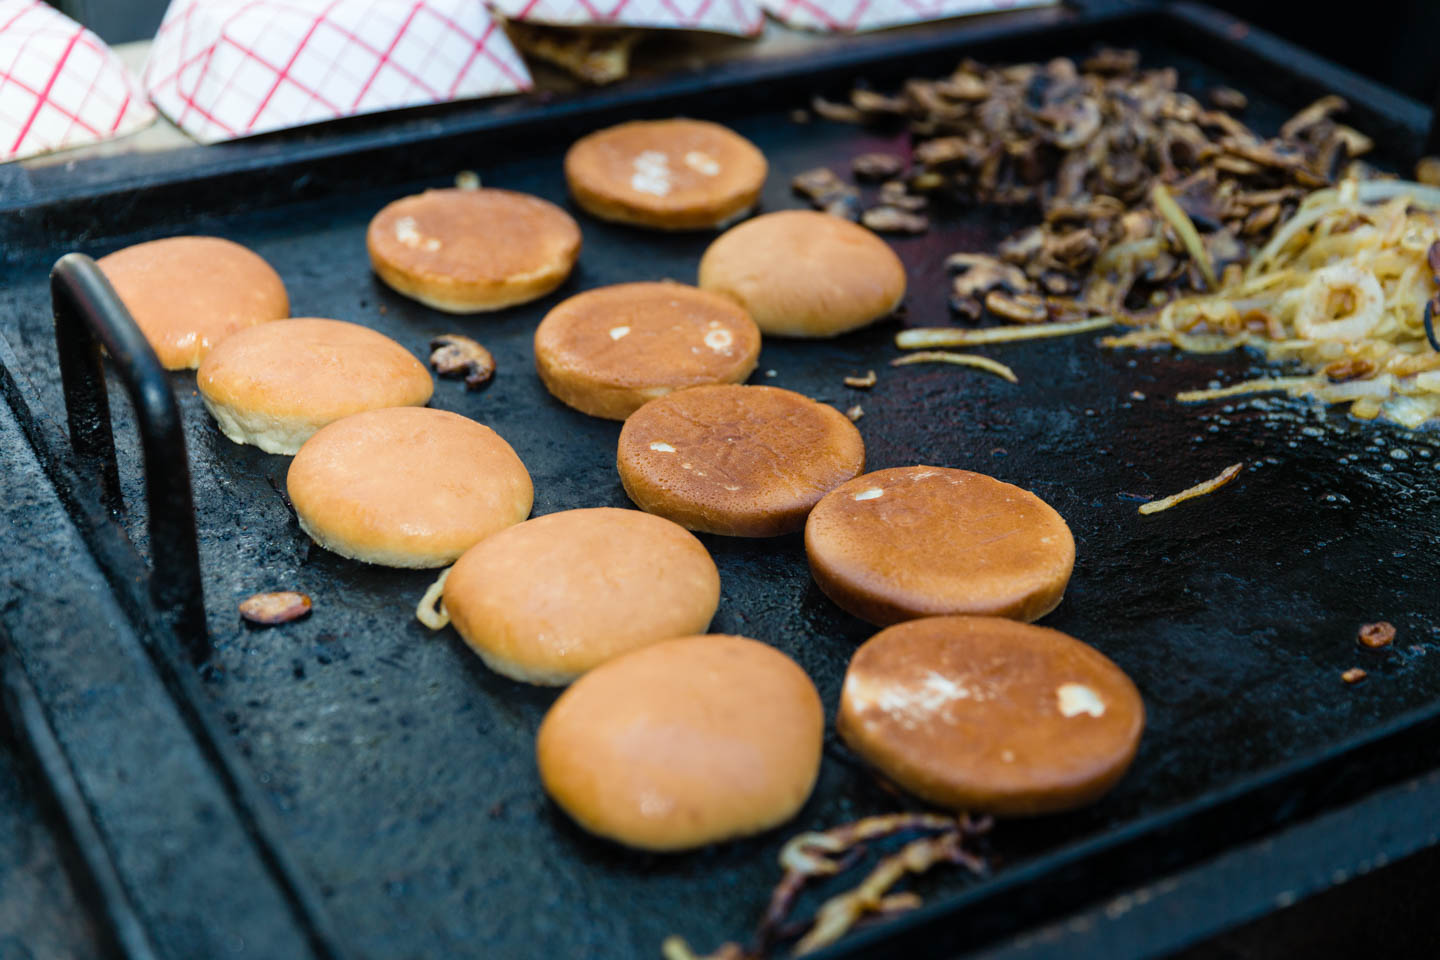 Grilling the hamburger buns